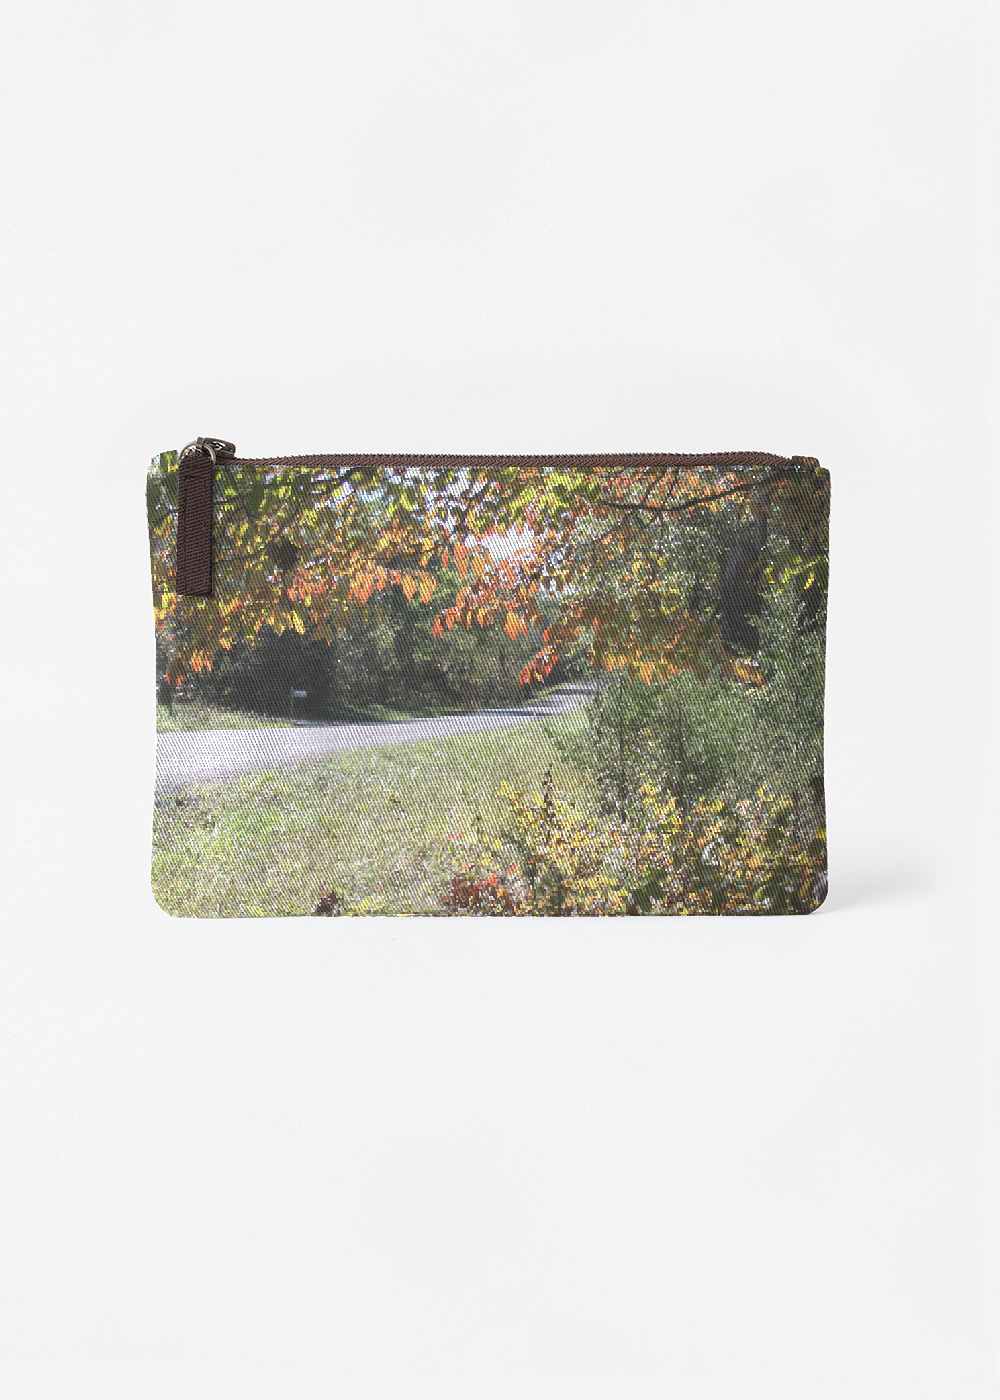 Stover missouri - Carry-All Pouch by Kathy Cornett